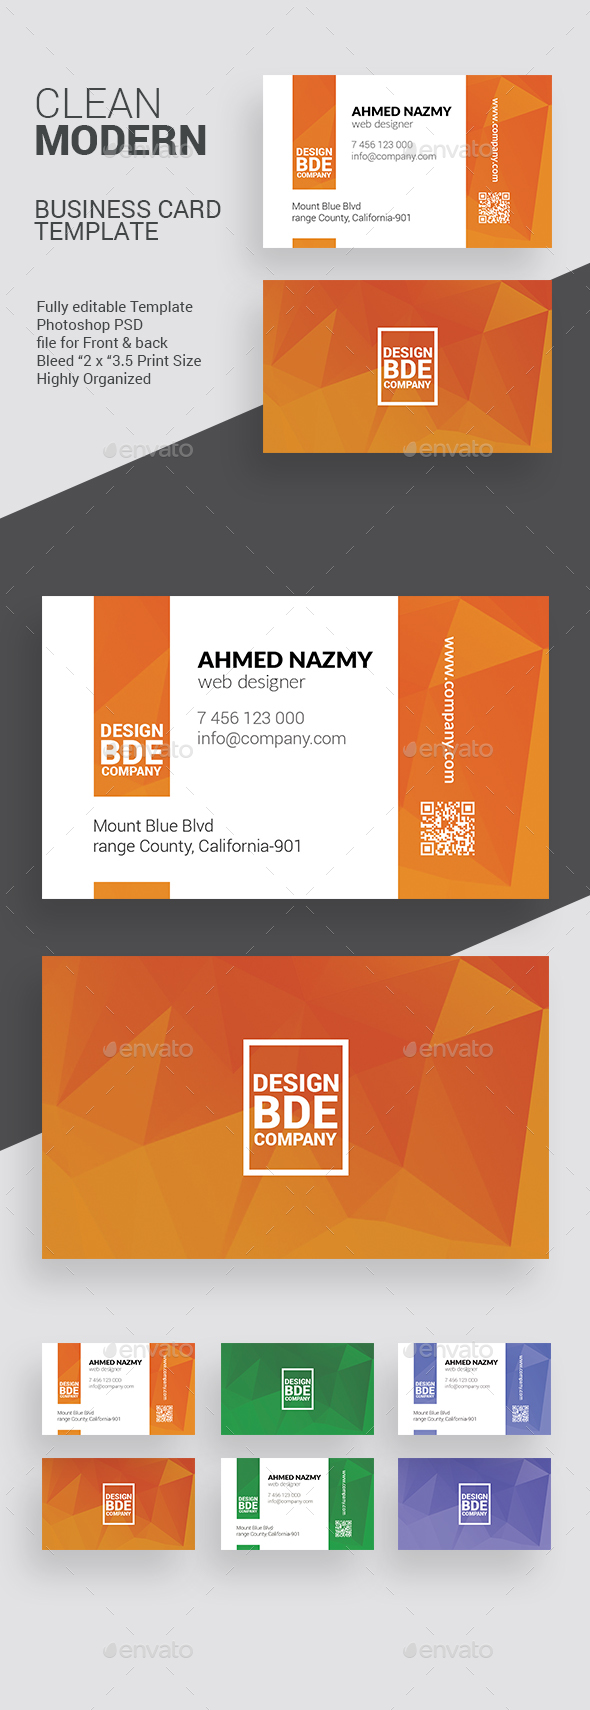 Clean Business Card Template 1 - Business Cards Print Templates